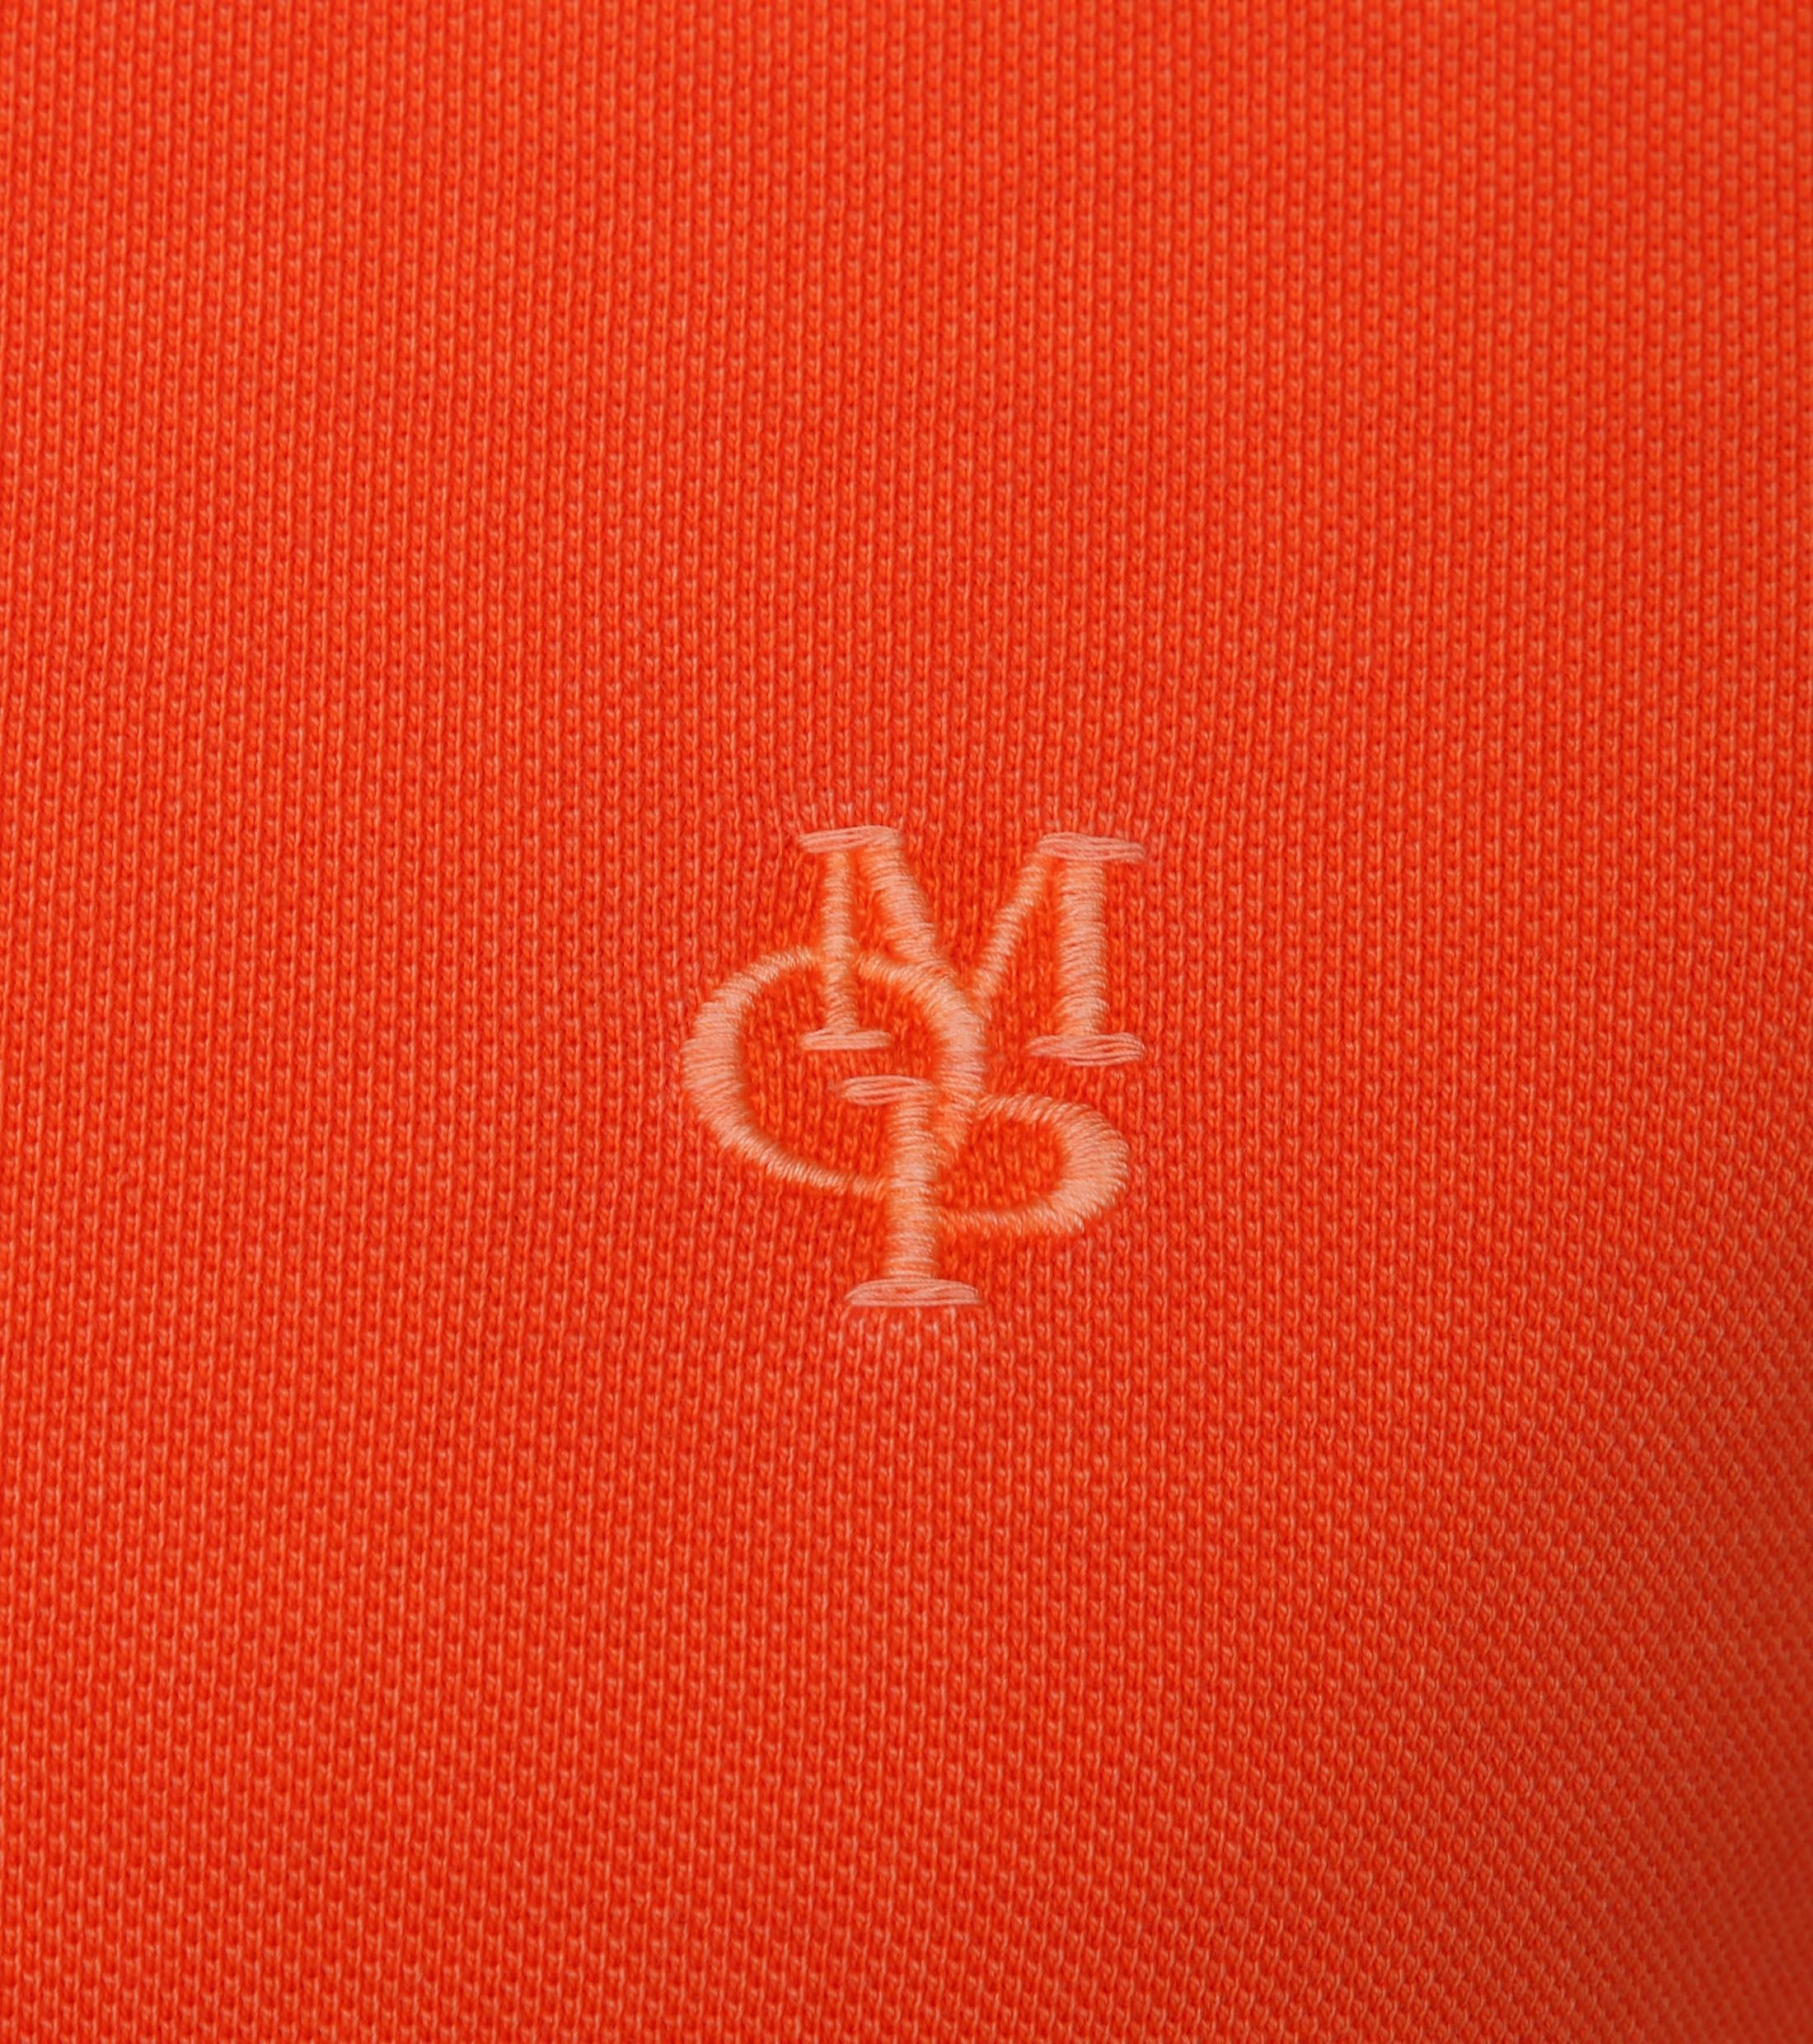 Marc O'Polo Poloshirt Garment Dyed Orange foto 1